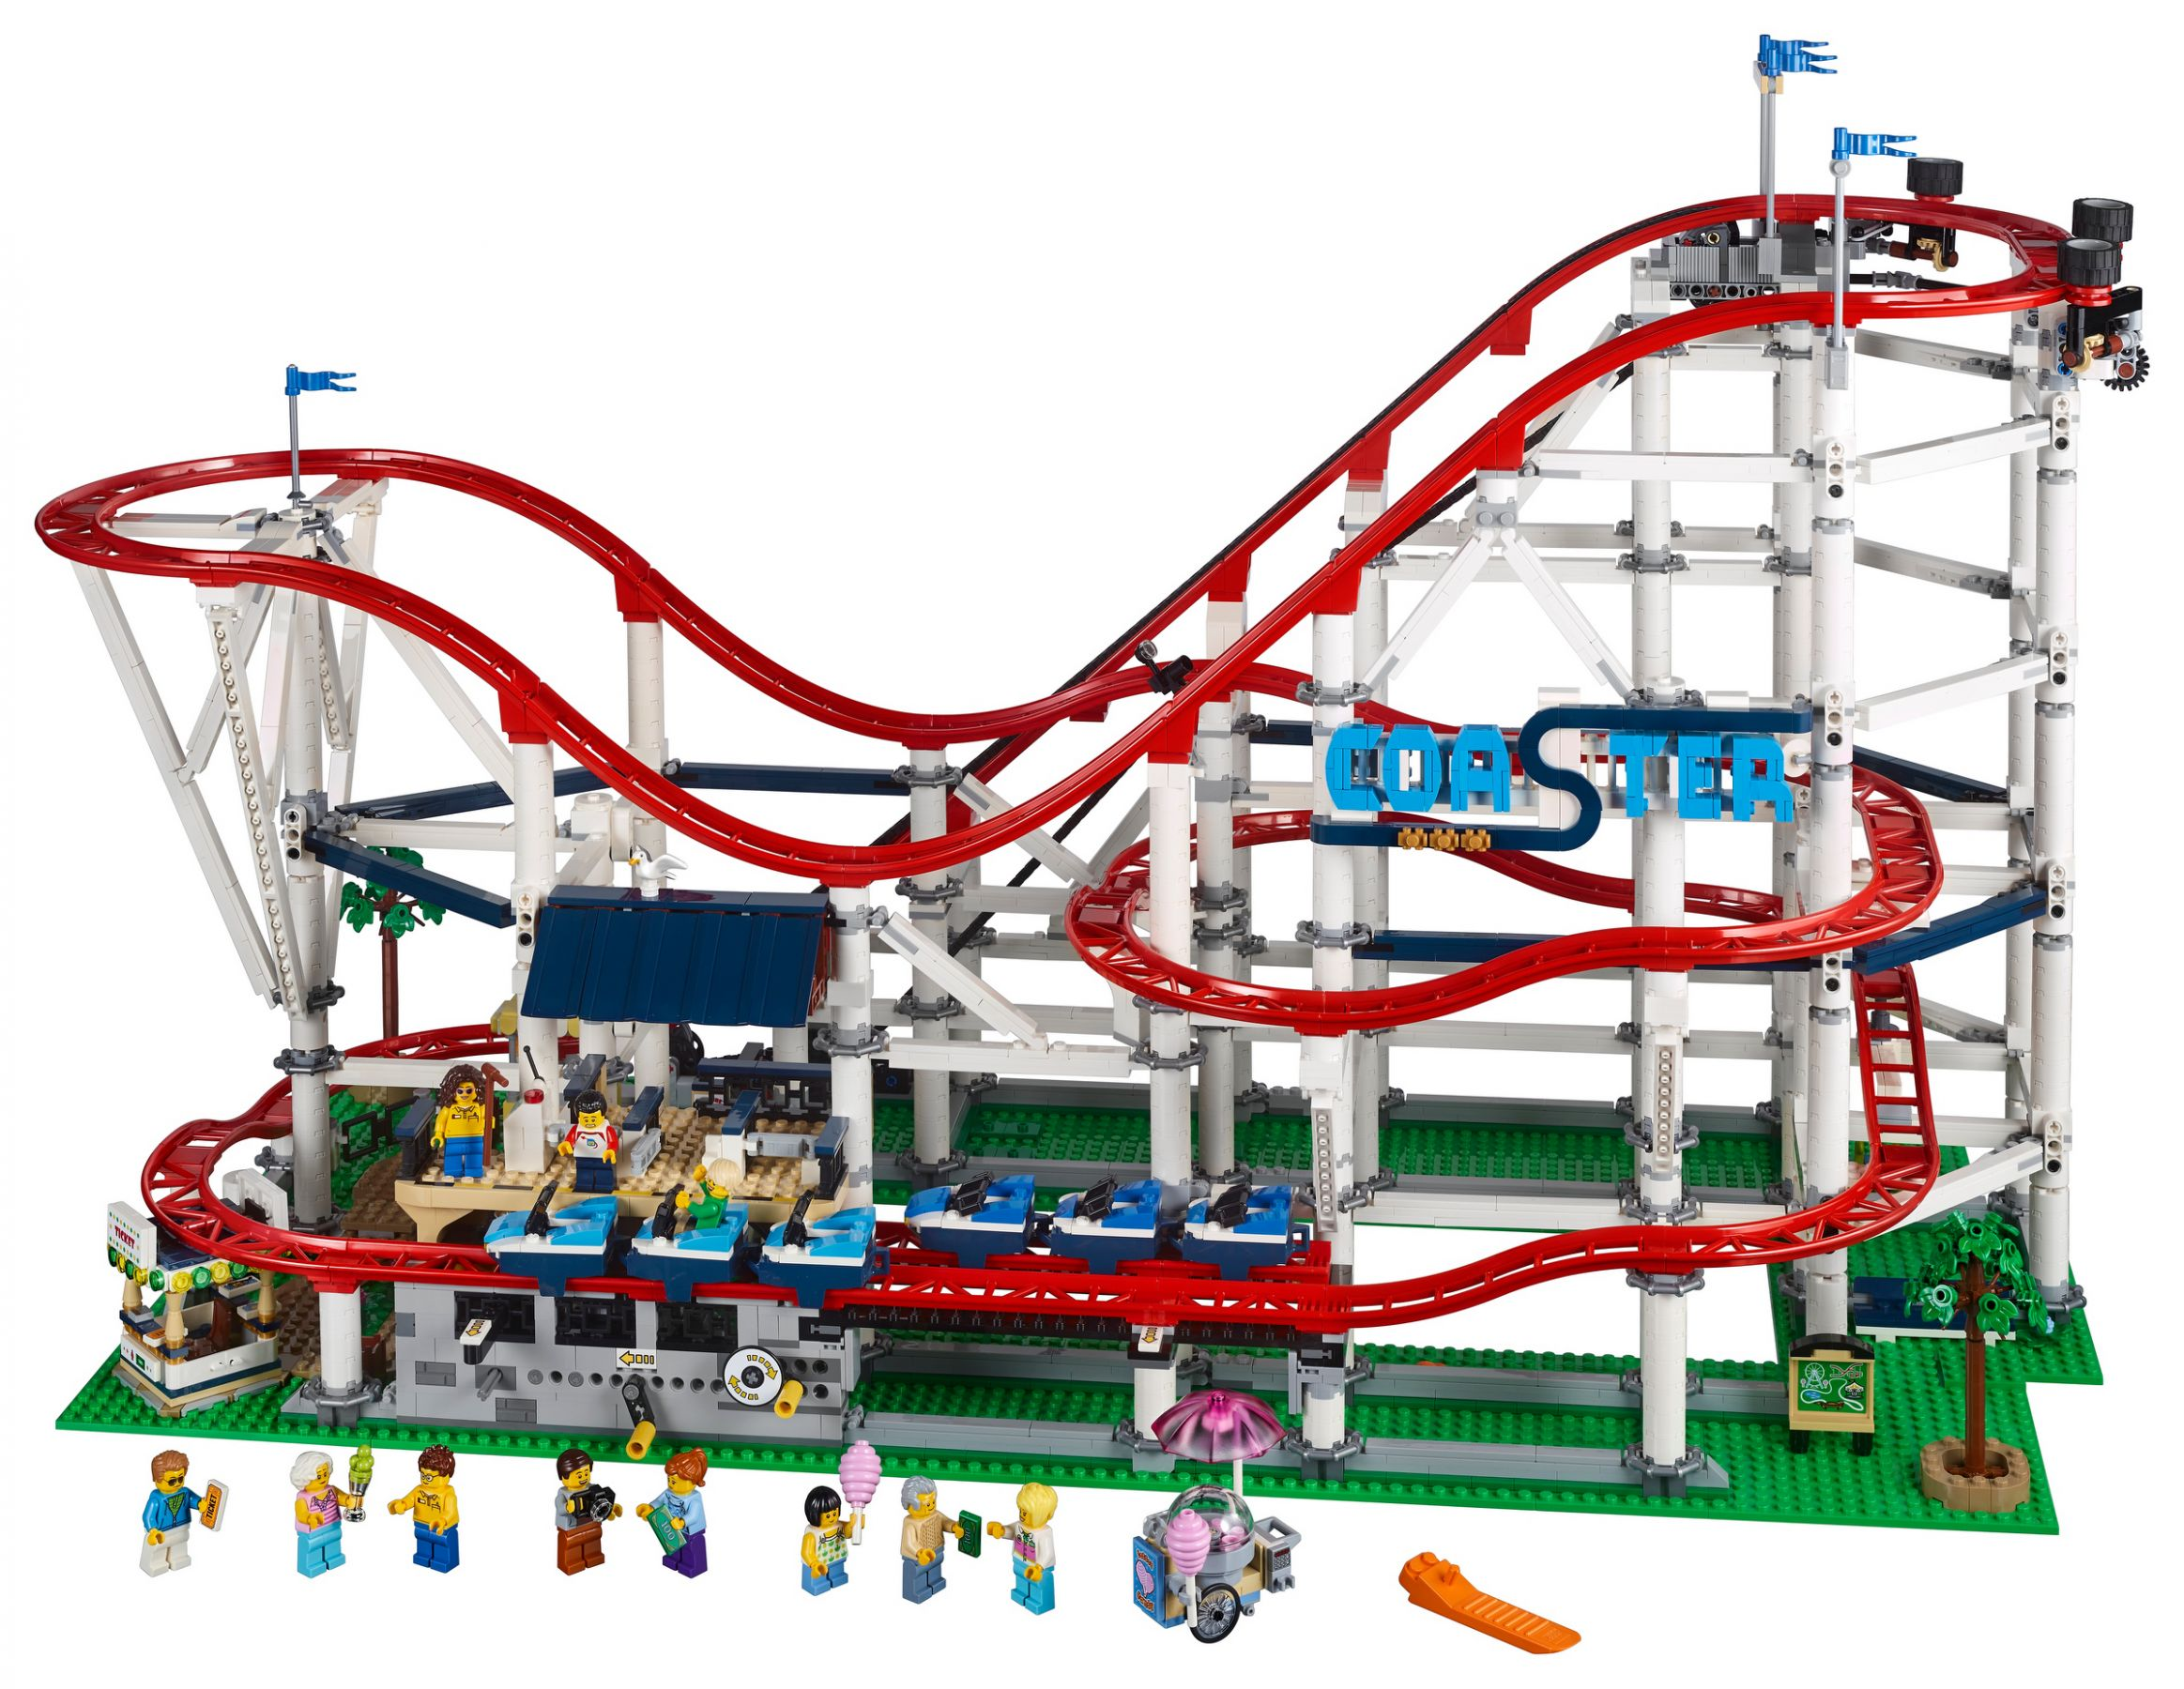 LEGO Advanced Models 10261 Achterbahn